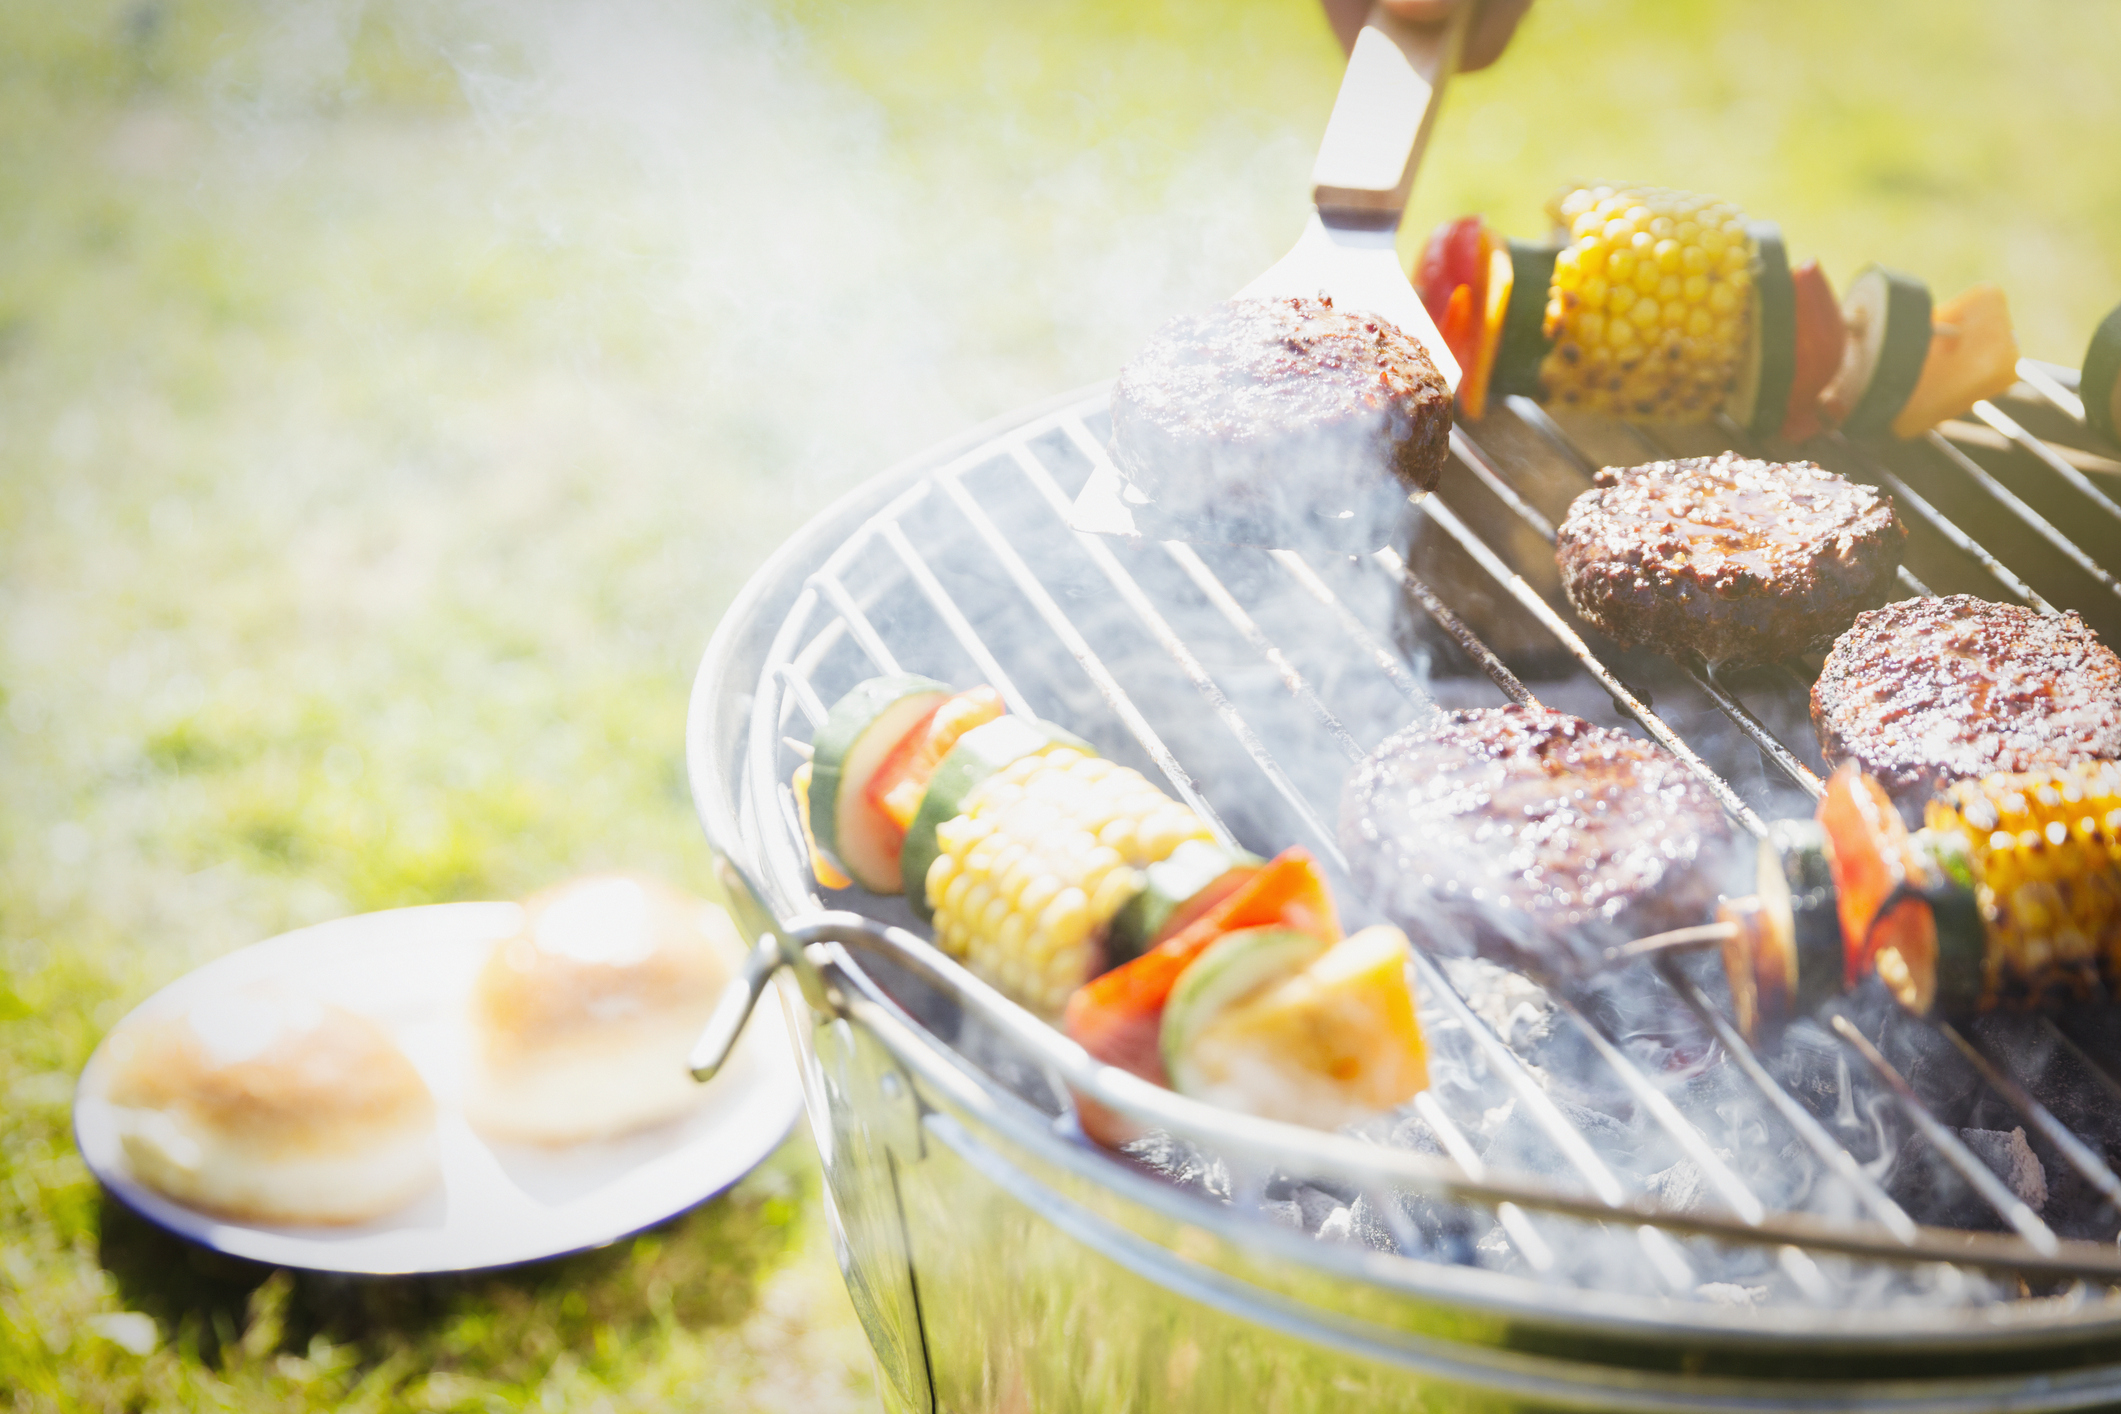 Burgers and kabobs on a barbecue grill